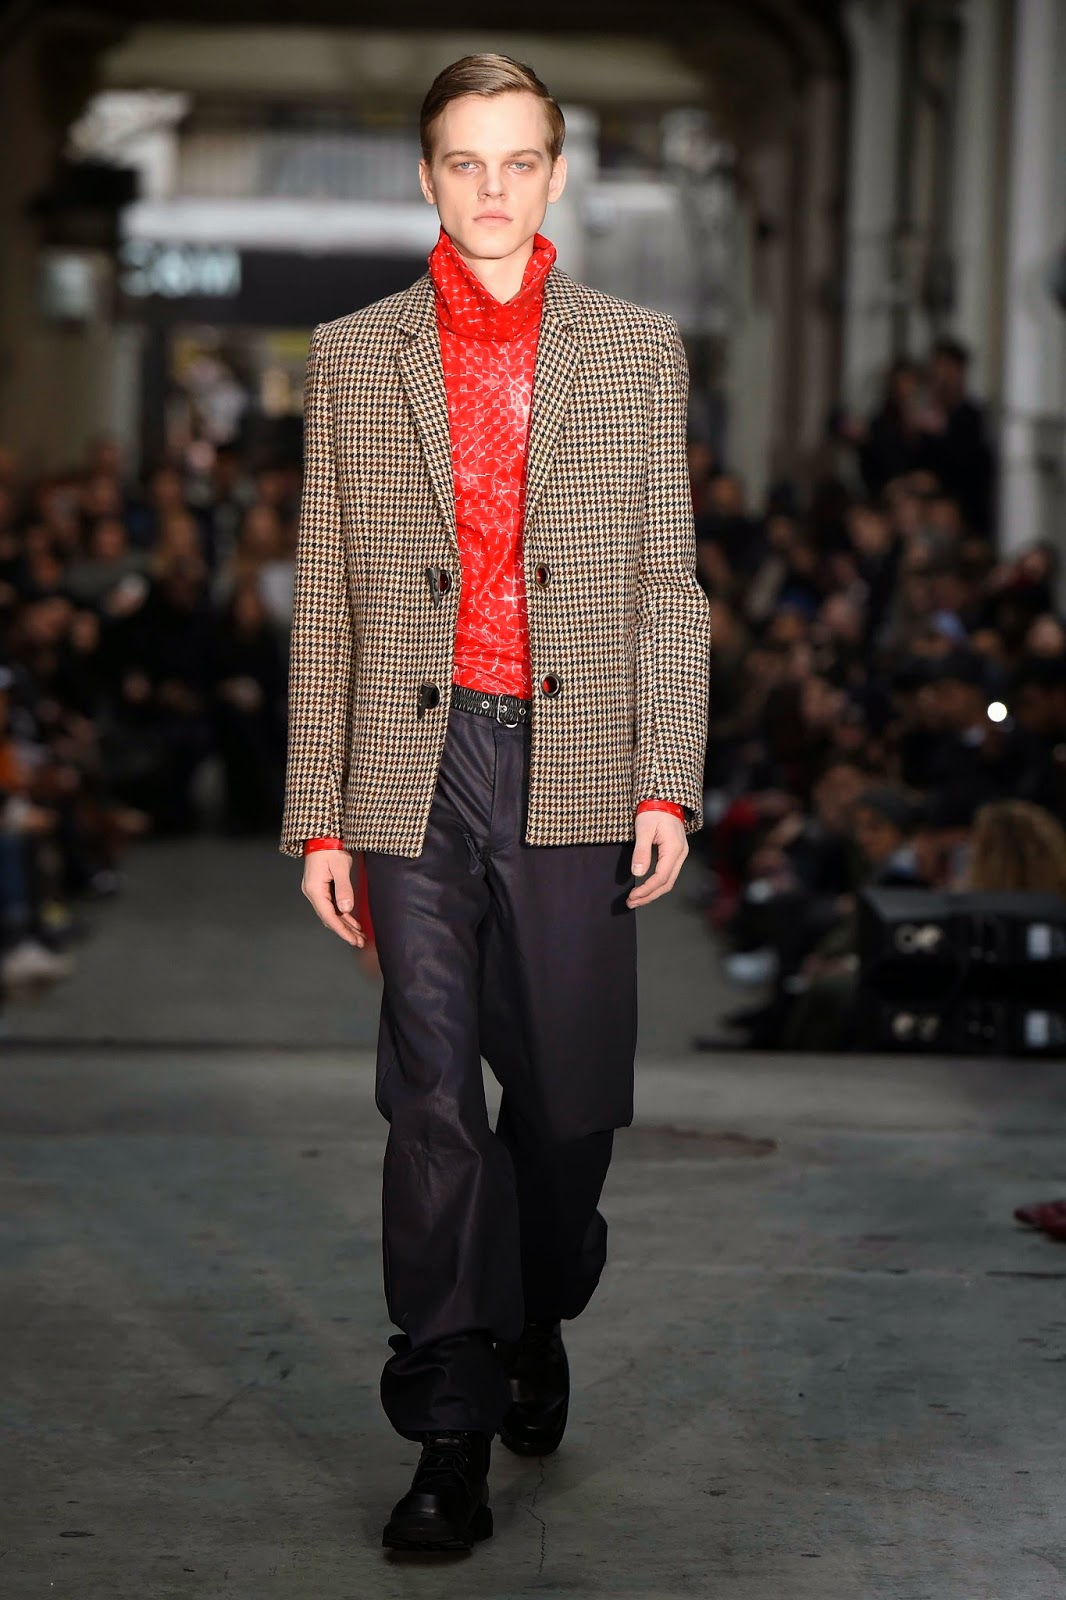 Y/Project AW15, Dsquared FW15, Y/Project Fall Winter 2015, Y/Project Autumn Winter 2015, Y/Project, YProject, du dessin aux podiums, dudessinauxpodiums, PFW, mode masculine, mode homme, menswear, habits, prêt-à-porter, tendance fashion, blog mode homme, magazine mode homme, site mode homme, conseil mode homme, doudoune homme, veste homme, chemise homme, vintage look, dress to impress, dress for less, boho, unique vintage, alloy clothing, venus clothing, la moda, spring trends, tendance, tendance de mode, blog de mode, fashion blog, blog mode, mode paris, paris mode, fashion news, designer, fashion designer, moda in pelle, ross dress for less, fashion magazines, fashion blogs, mode a toi, revista de moda, vintage, vintage definition, vintage retro, top fashion, suits online, blog de moda, blog moda, ropa, blogs de moda, fashion tops, vetement tendance, fashion week, Paris Fashion Week